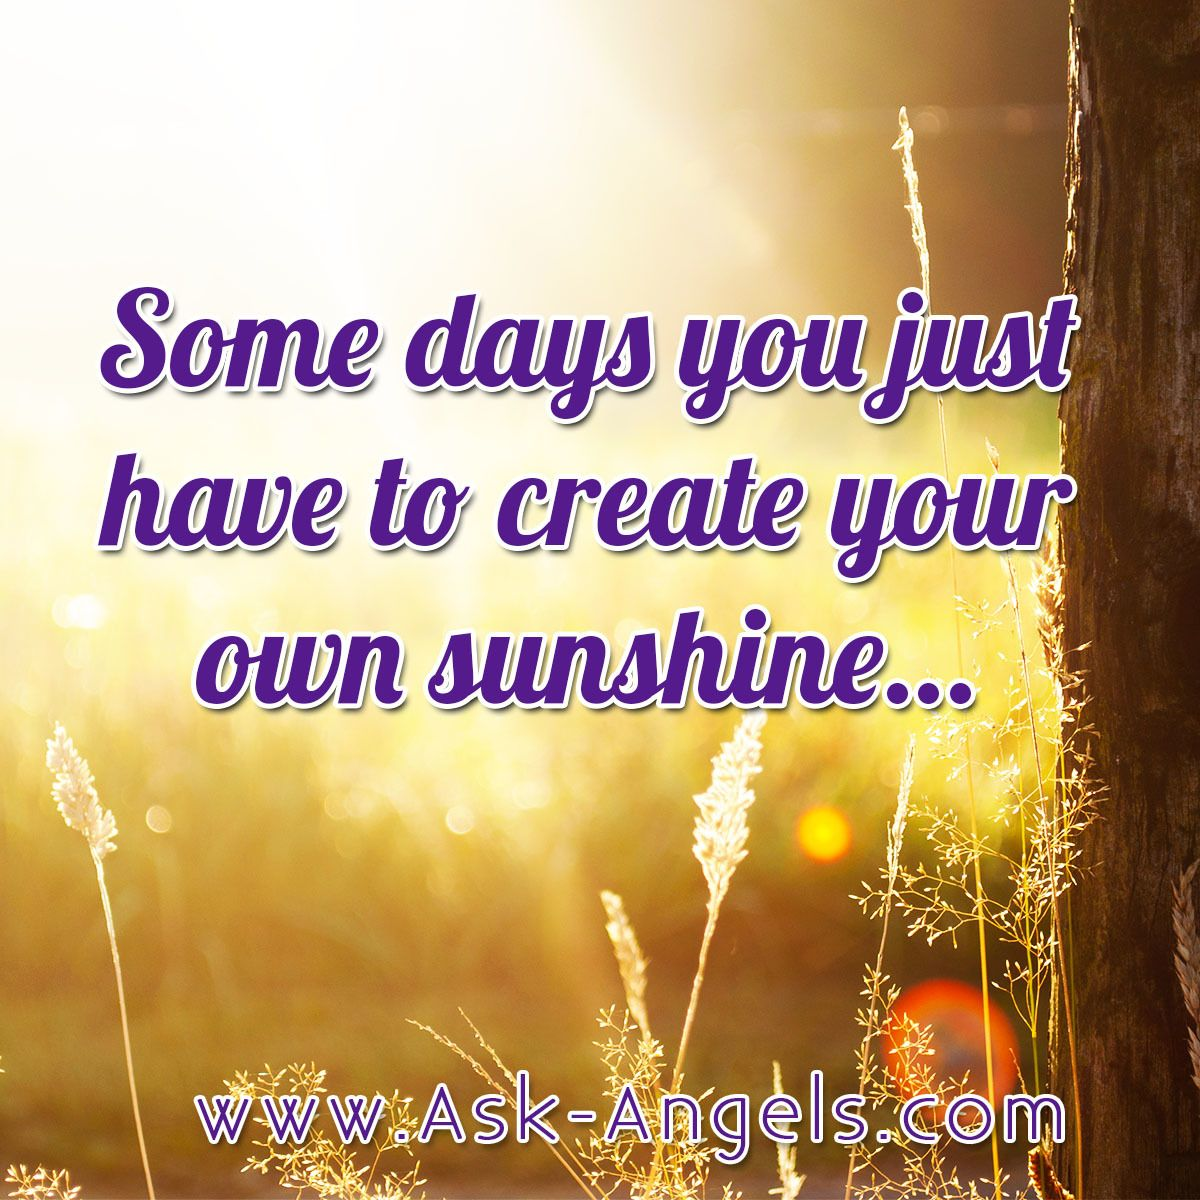 Make Your Own Quotes: Some Days You Just Have To Create Your Own Sunshine